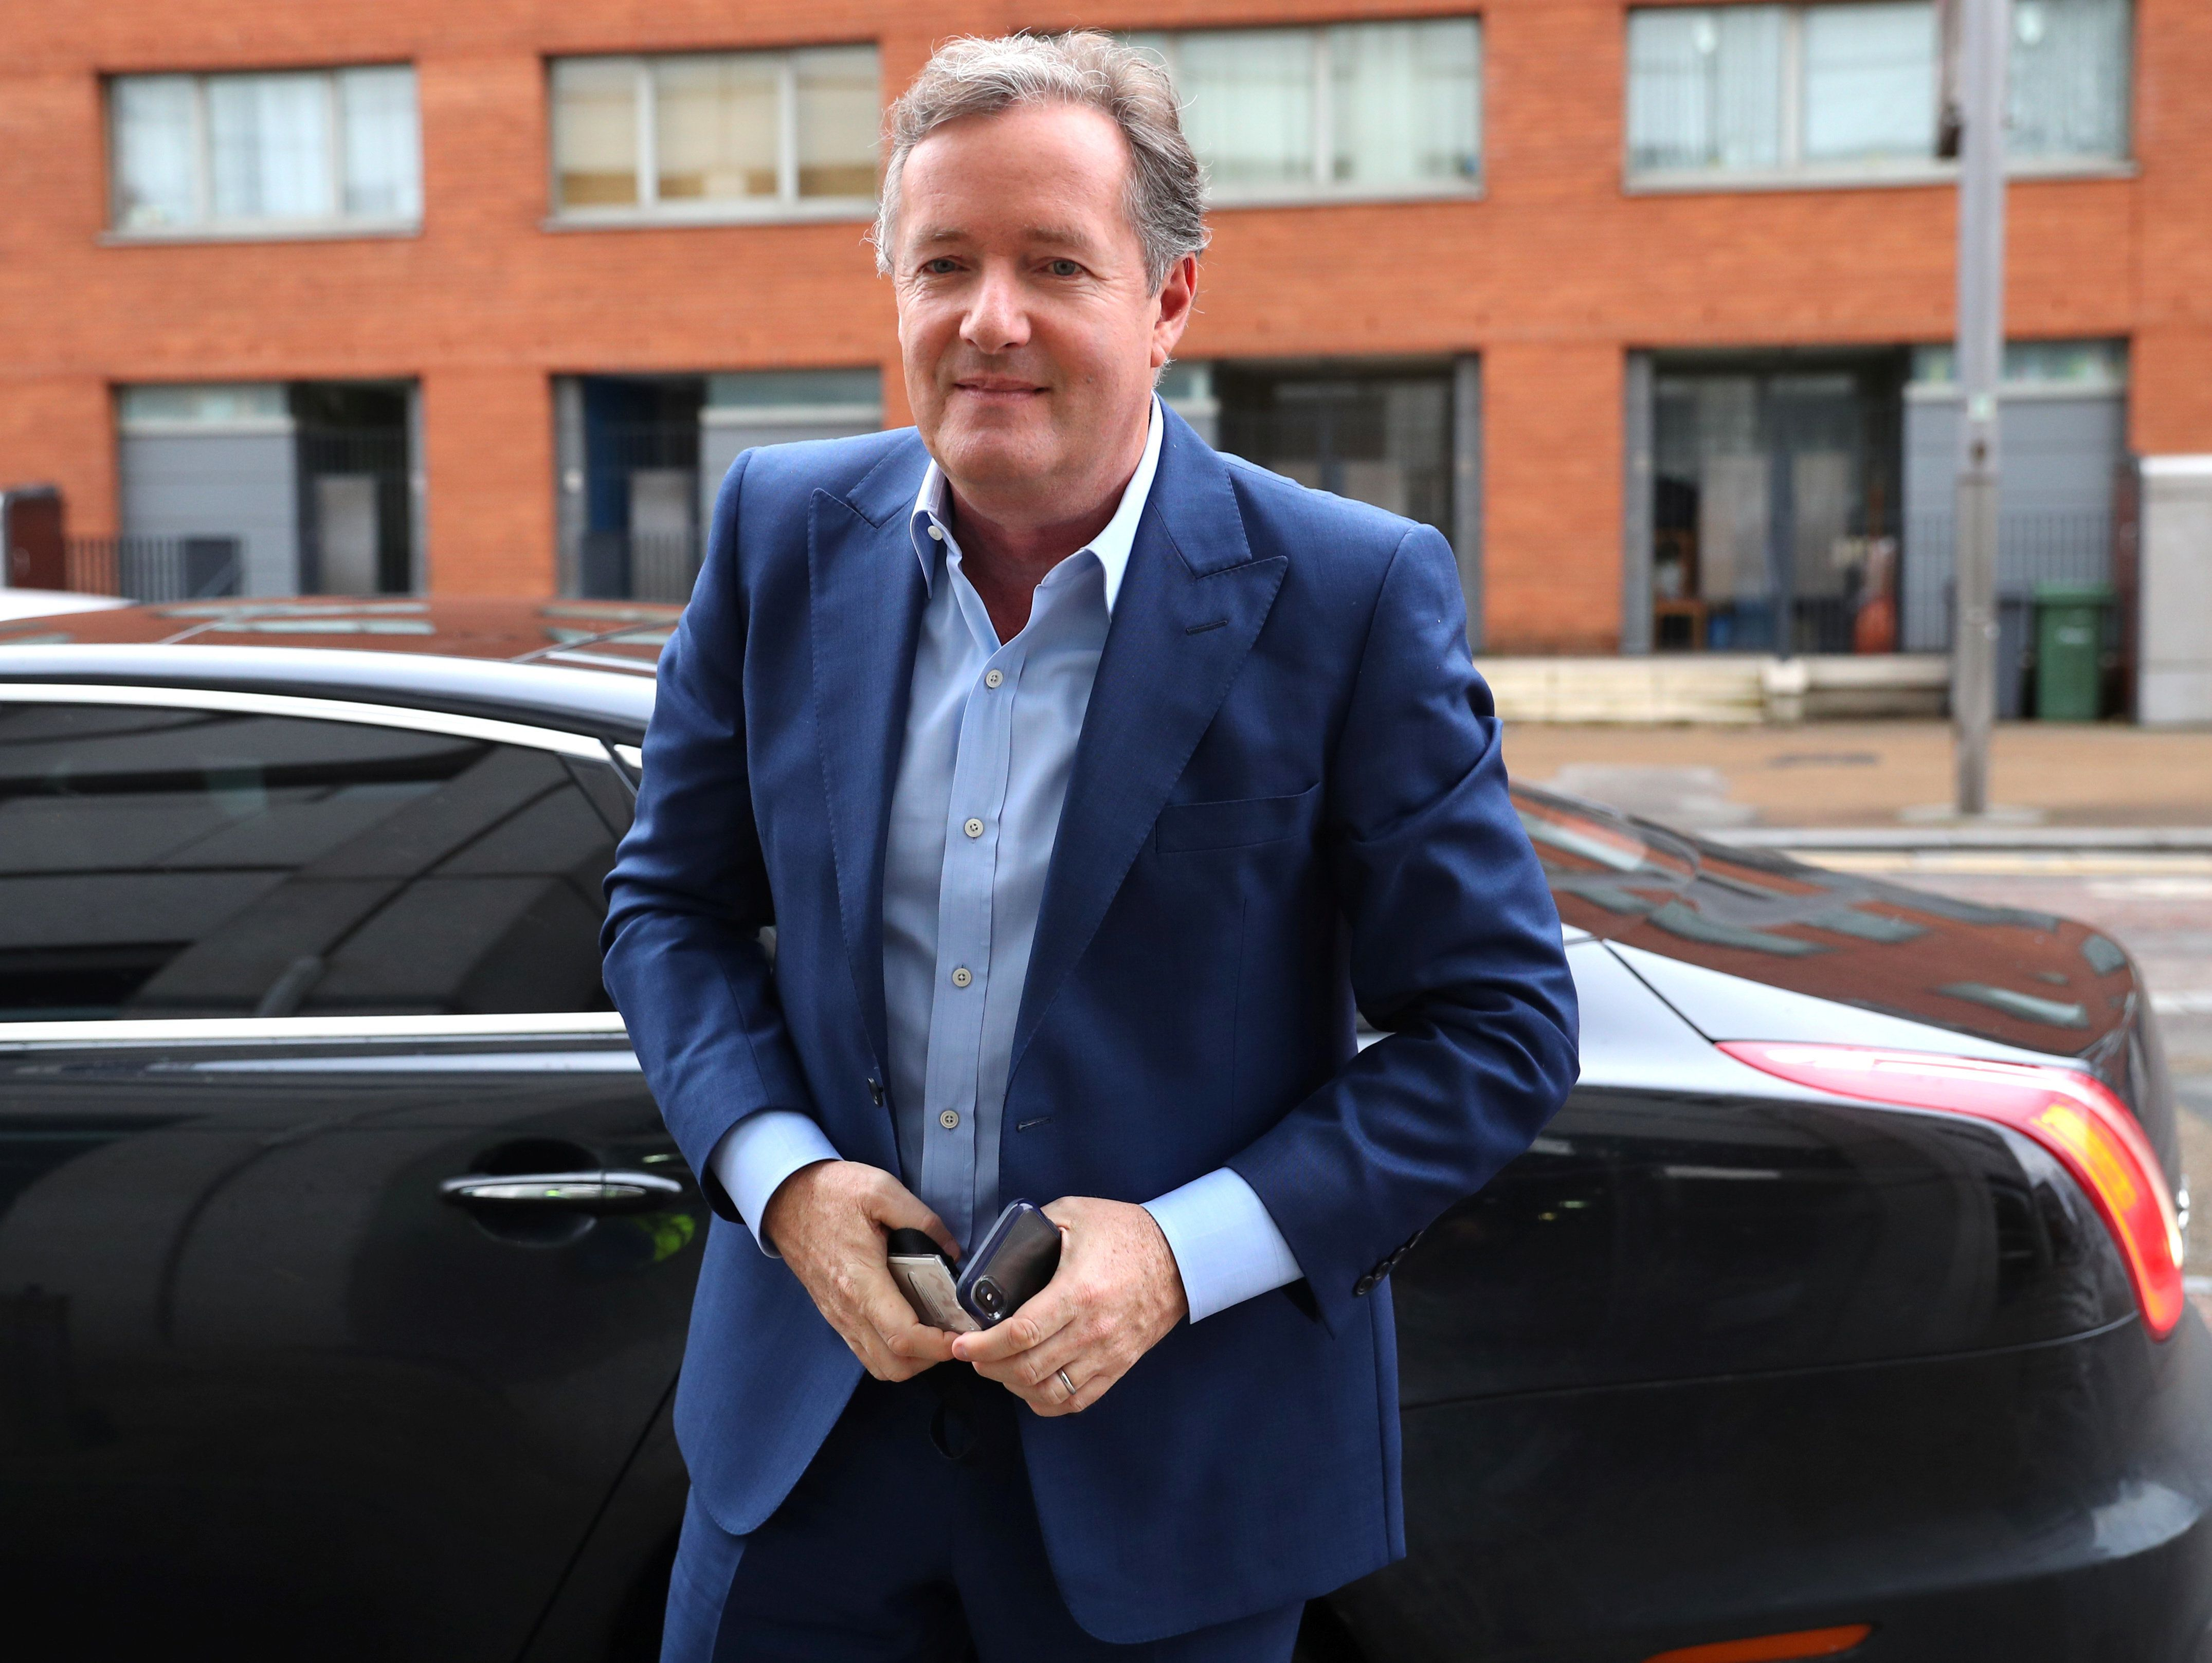 Piers Morgan Explains Why He Didn't 'Press Harder' During Donald Trump Interview